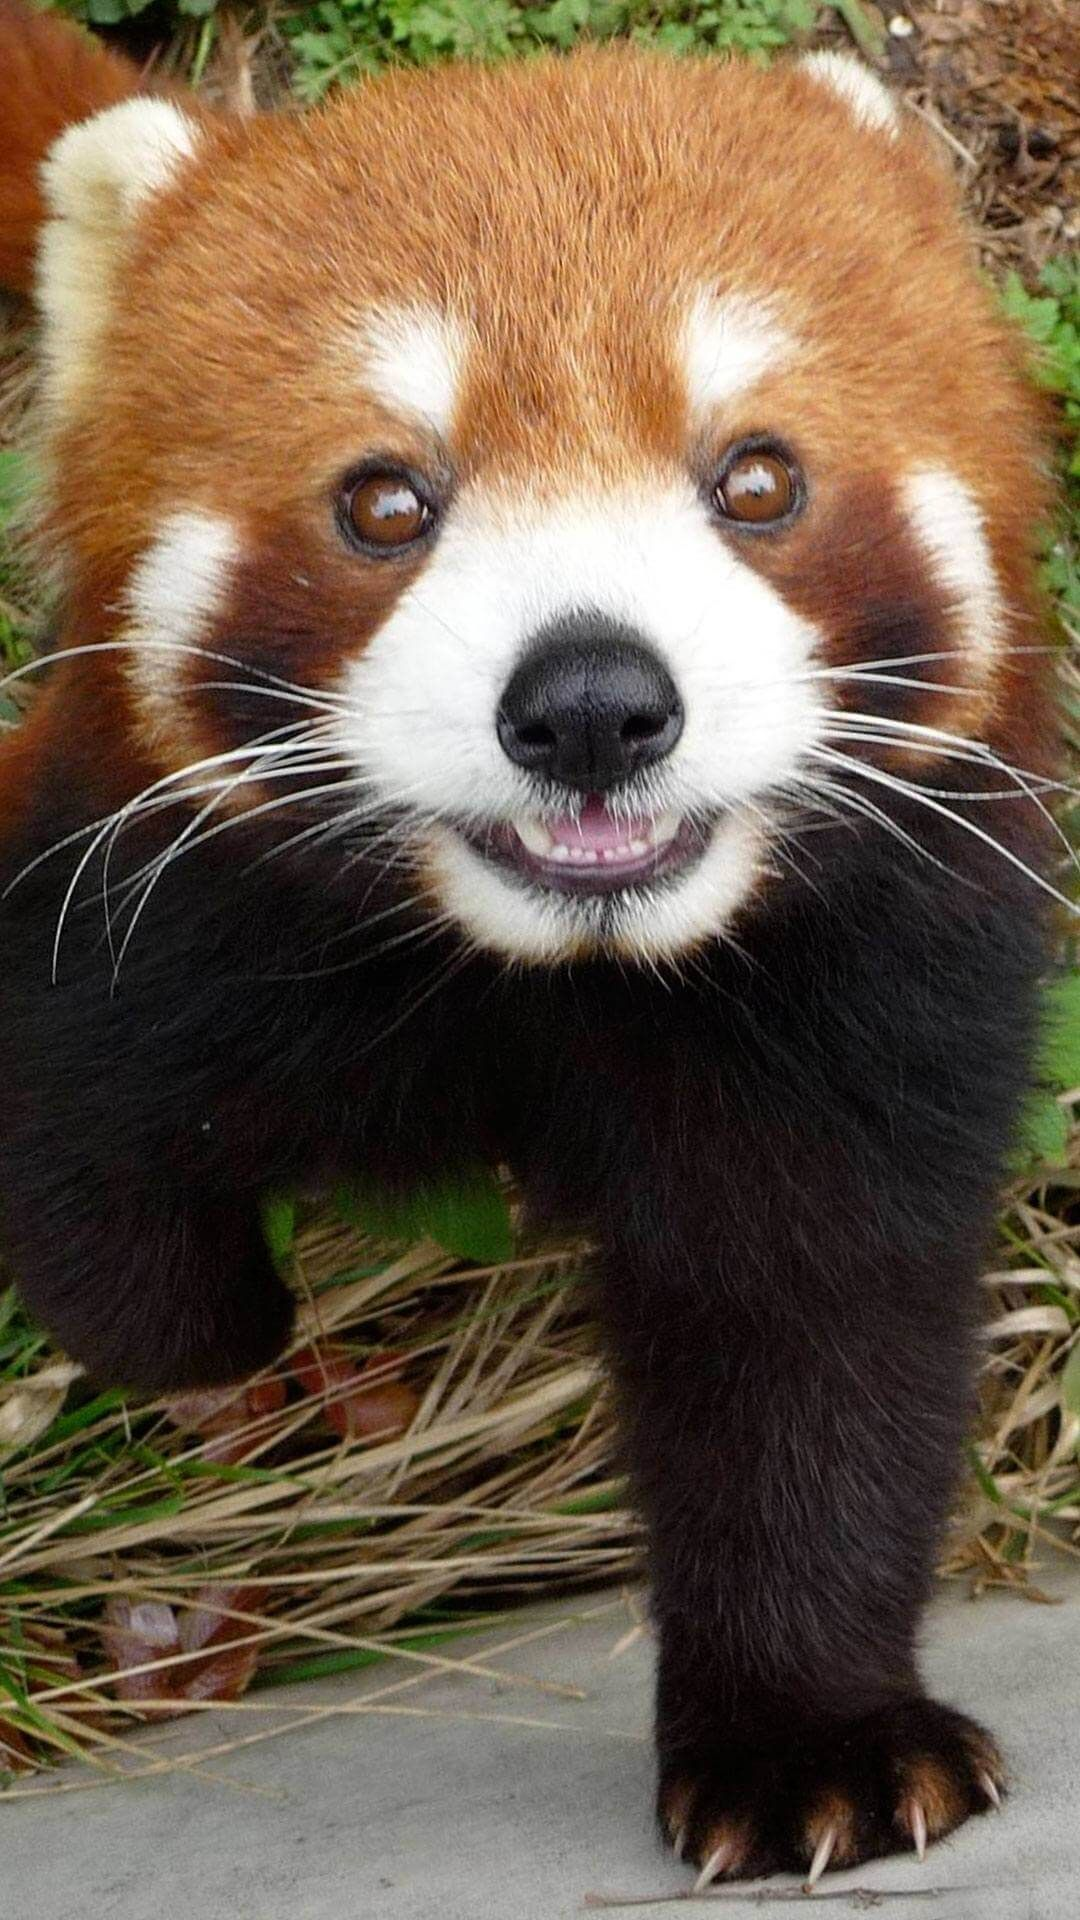 cute red panda wallpaper iphone hd | animal wallpaper for iphone